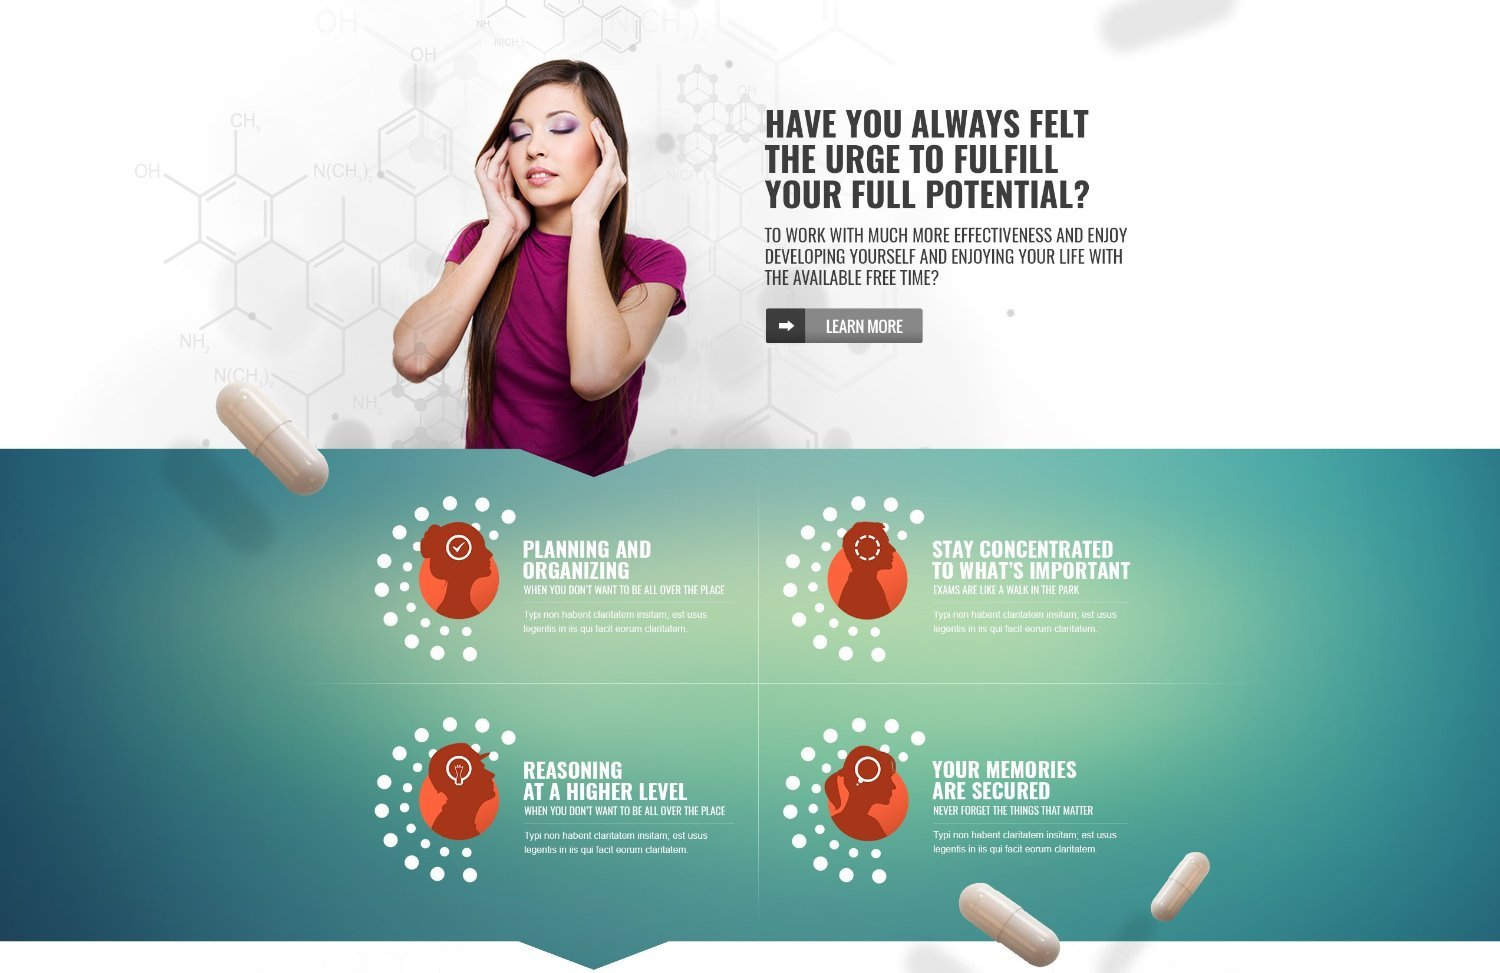 Paneuromix® - The Most Complete Nootropic - with i.a. 250 mg Alpha-GPC & 200 mg Bacopa Monnieri- The #1 Cognitive Enhancer Available - AKA NZT.2 - It\'s like a Real Life NZT-48 Limitless Pill/ 30 ct